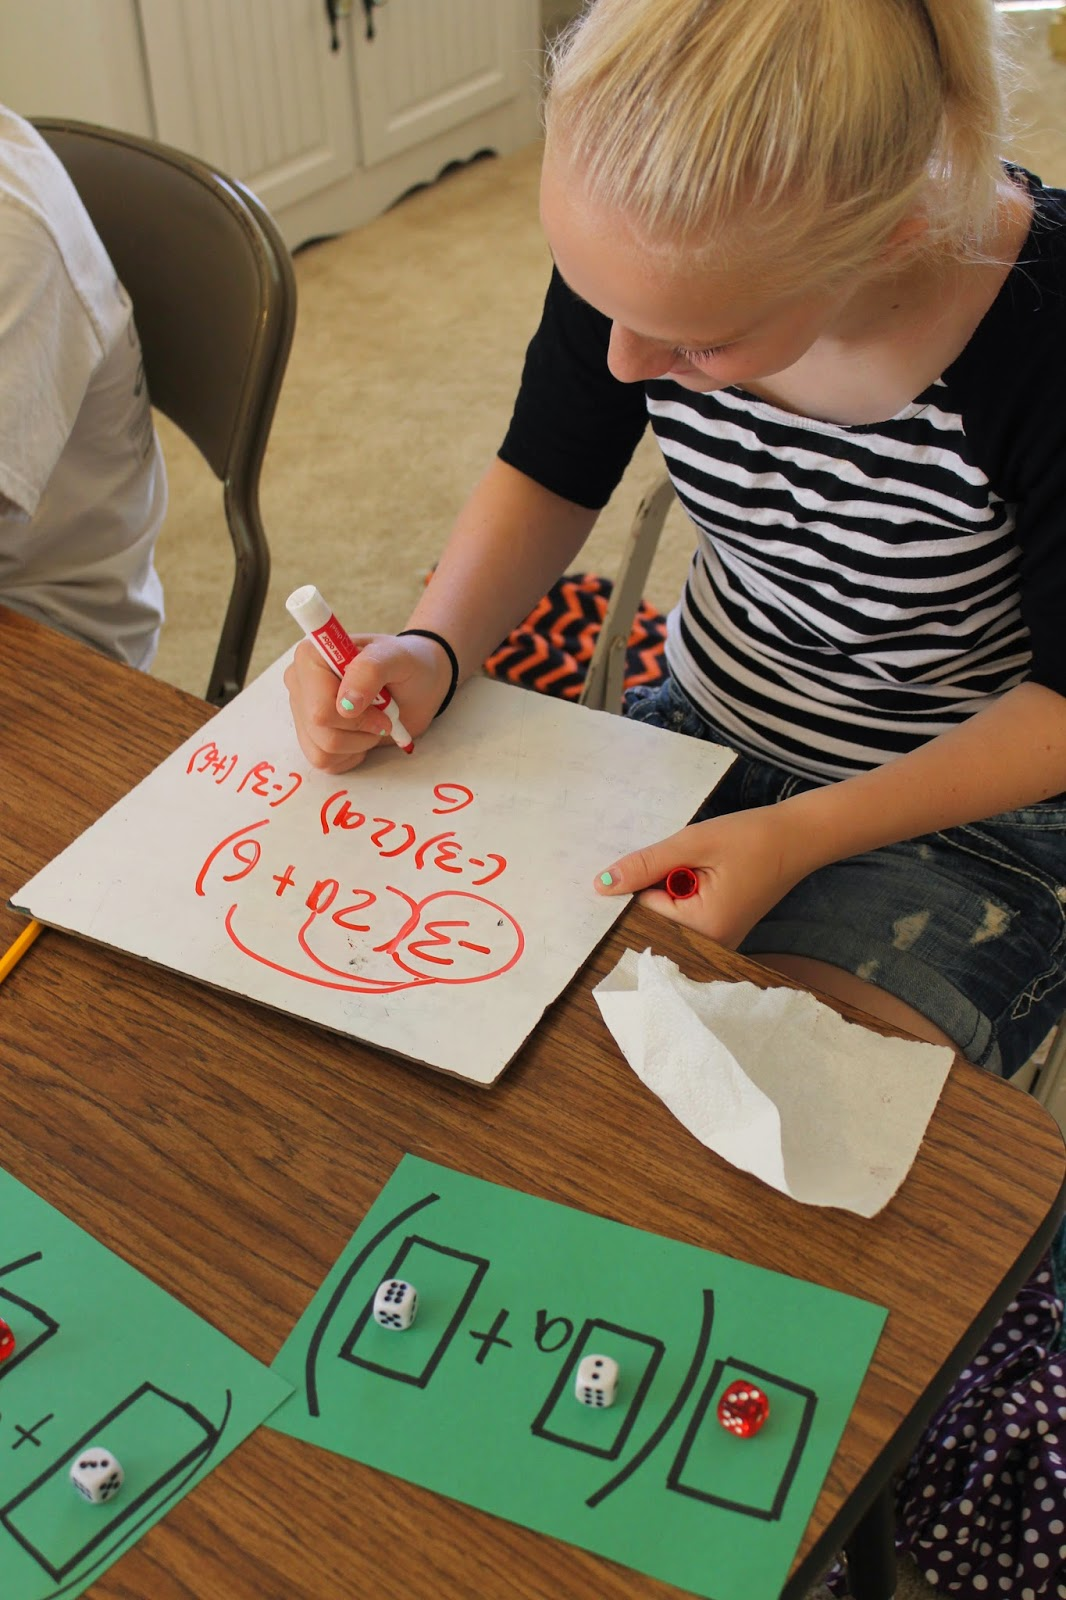 Apples 4 Bookworms Distributive Property Hands On Activity